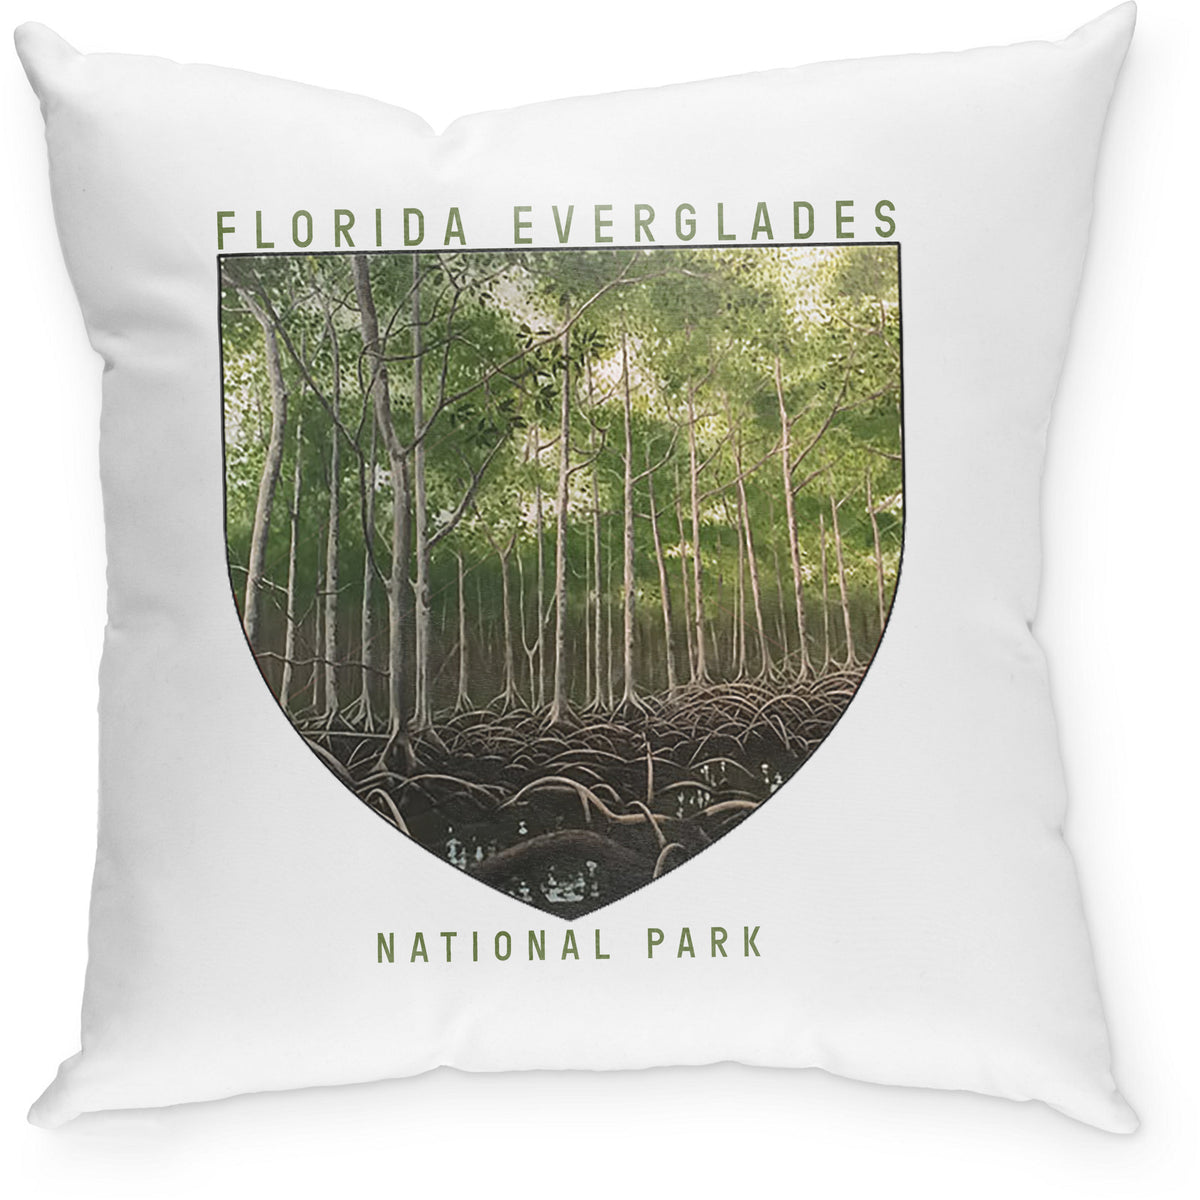 SEVENLY HOME GOODS - COTTON CANVAS THROW PILLOW - FLORIDA EVERGLADES NATIONAL PARK